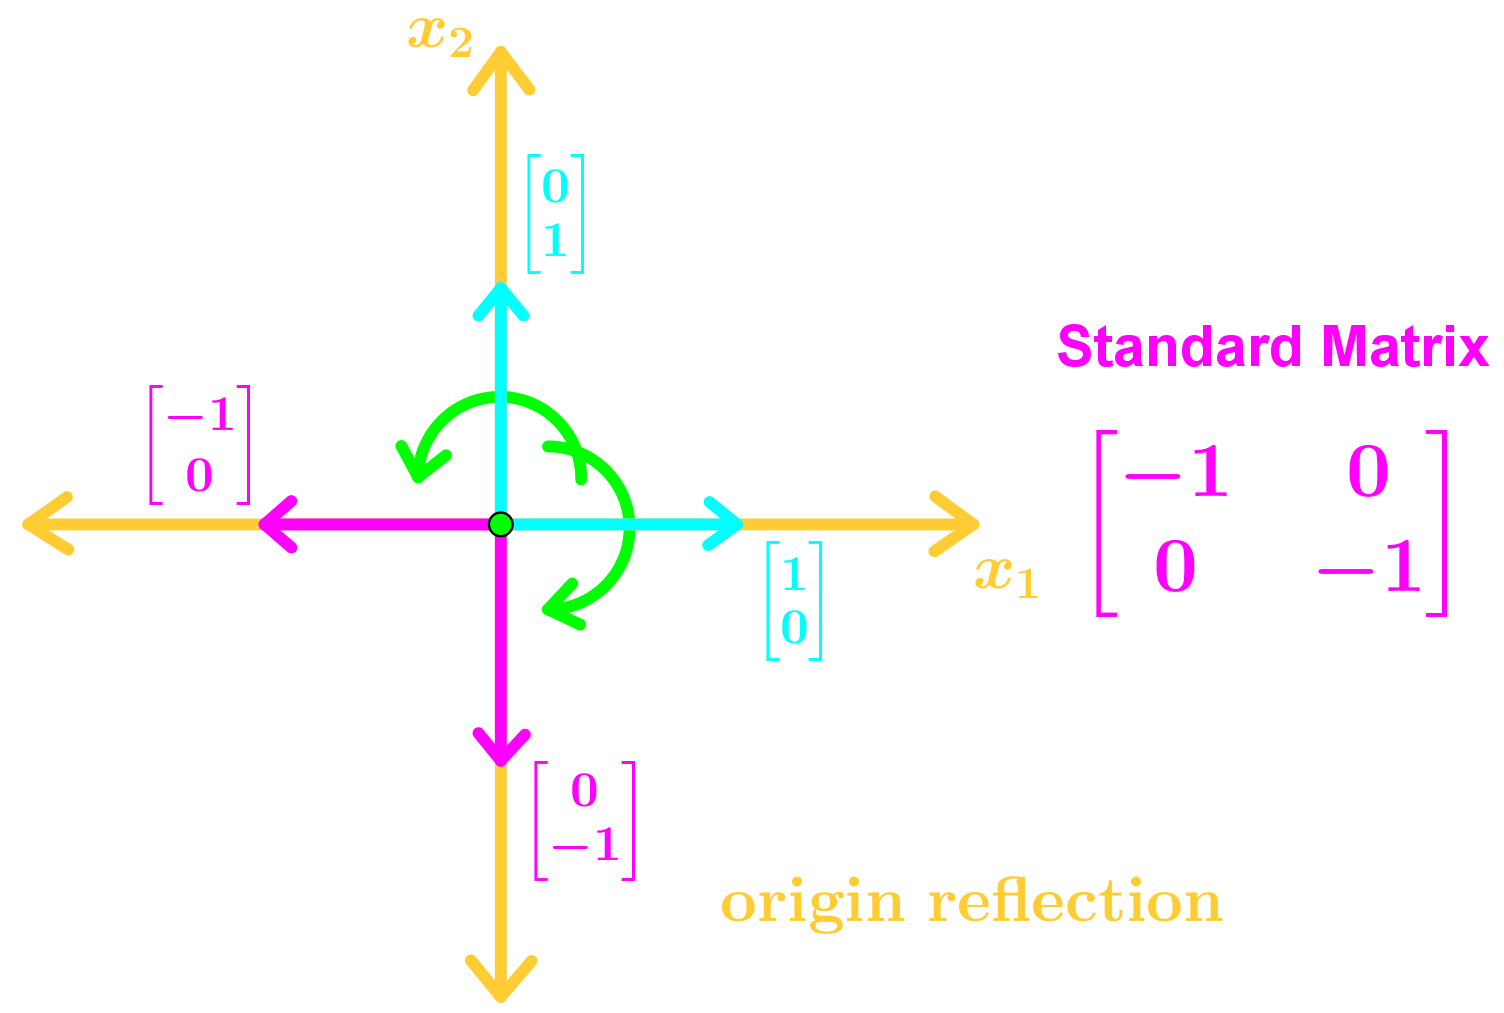 origin reflection